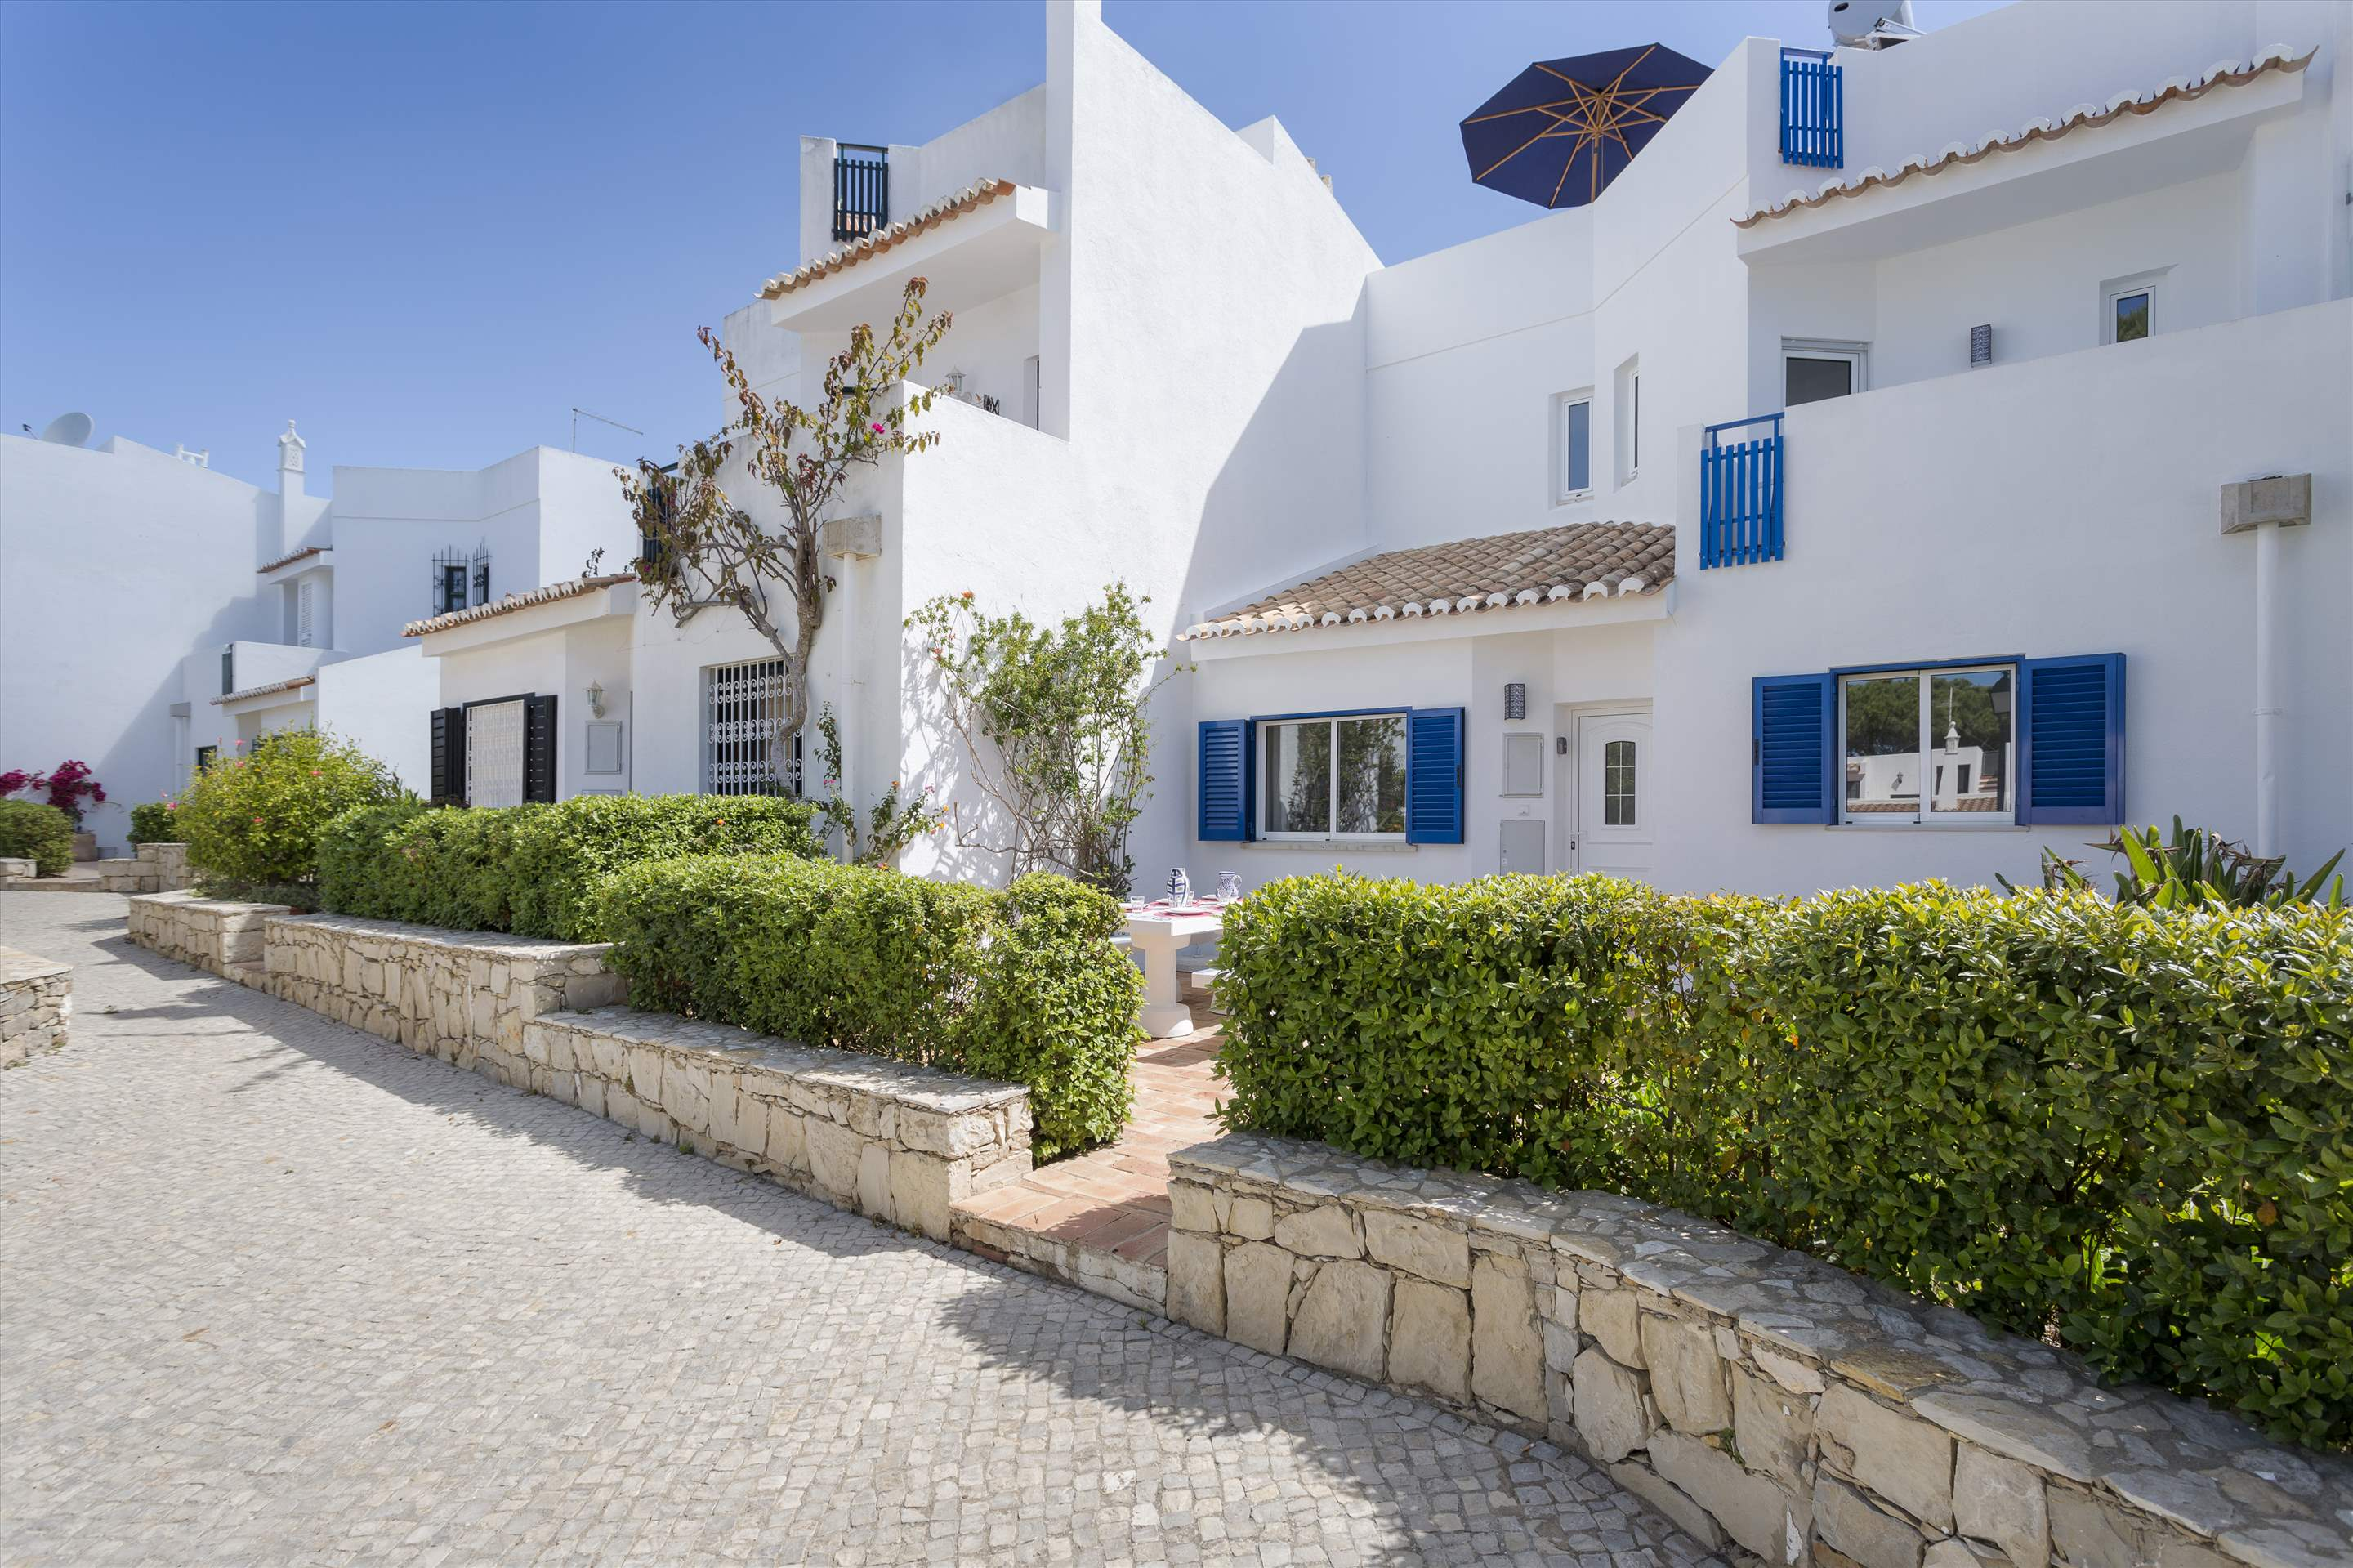 Townhouse Megan, 3 bedroom villa in Vale do Lobo, Algarve Photo #8